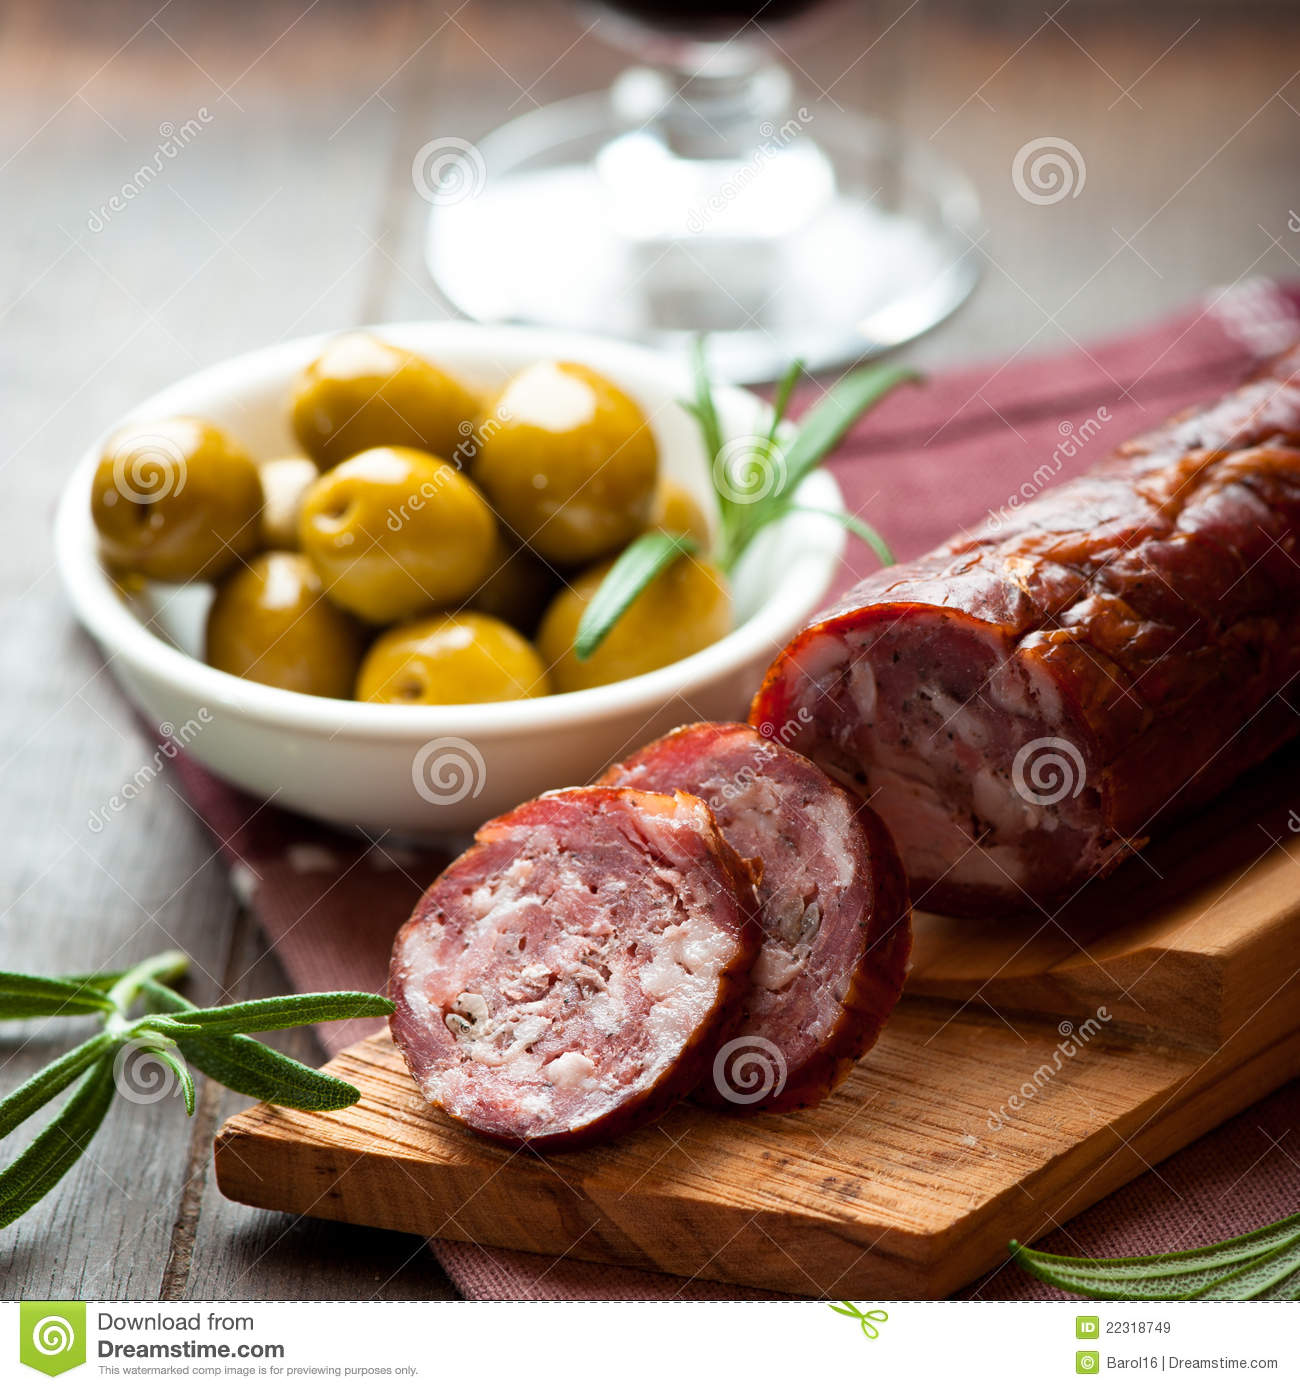 Cured dry sausage on chopping board